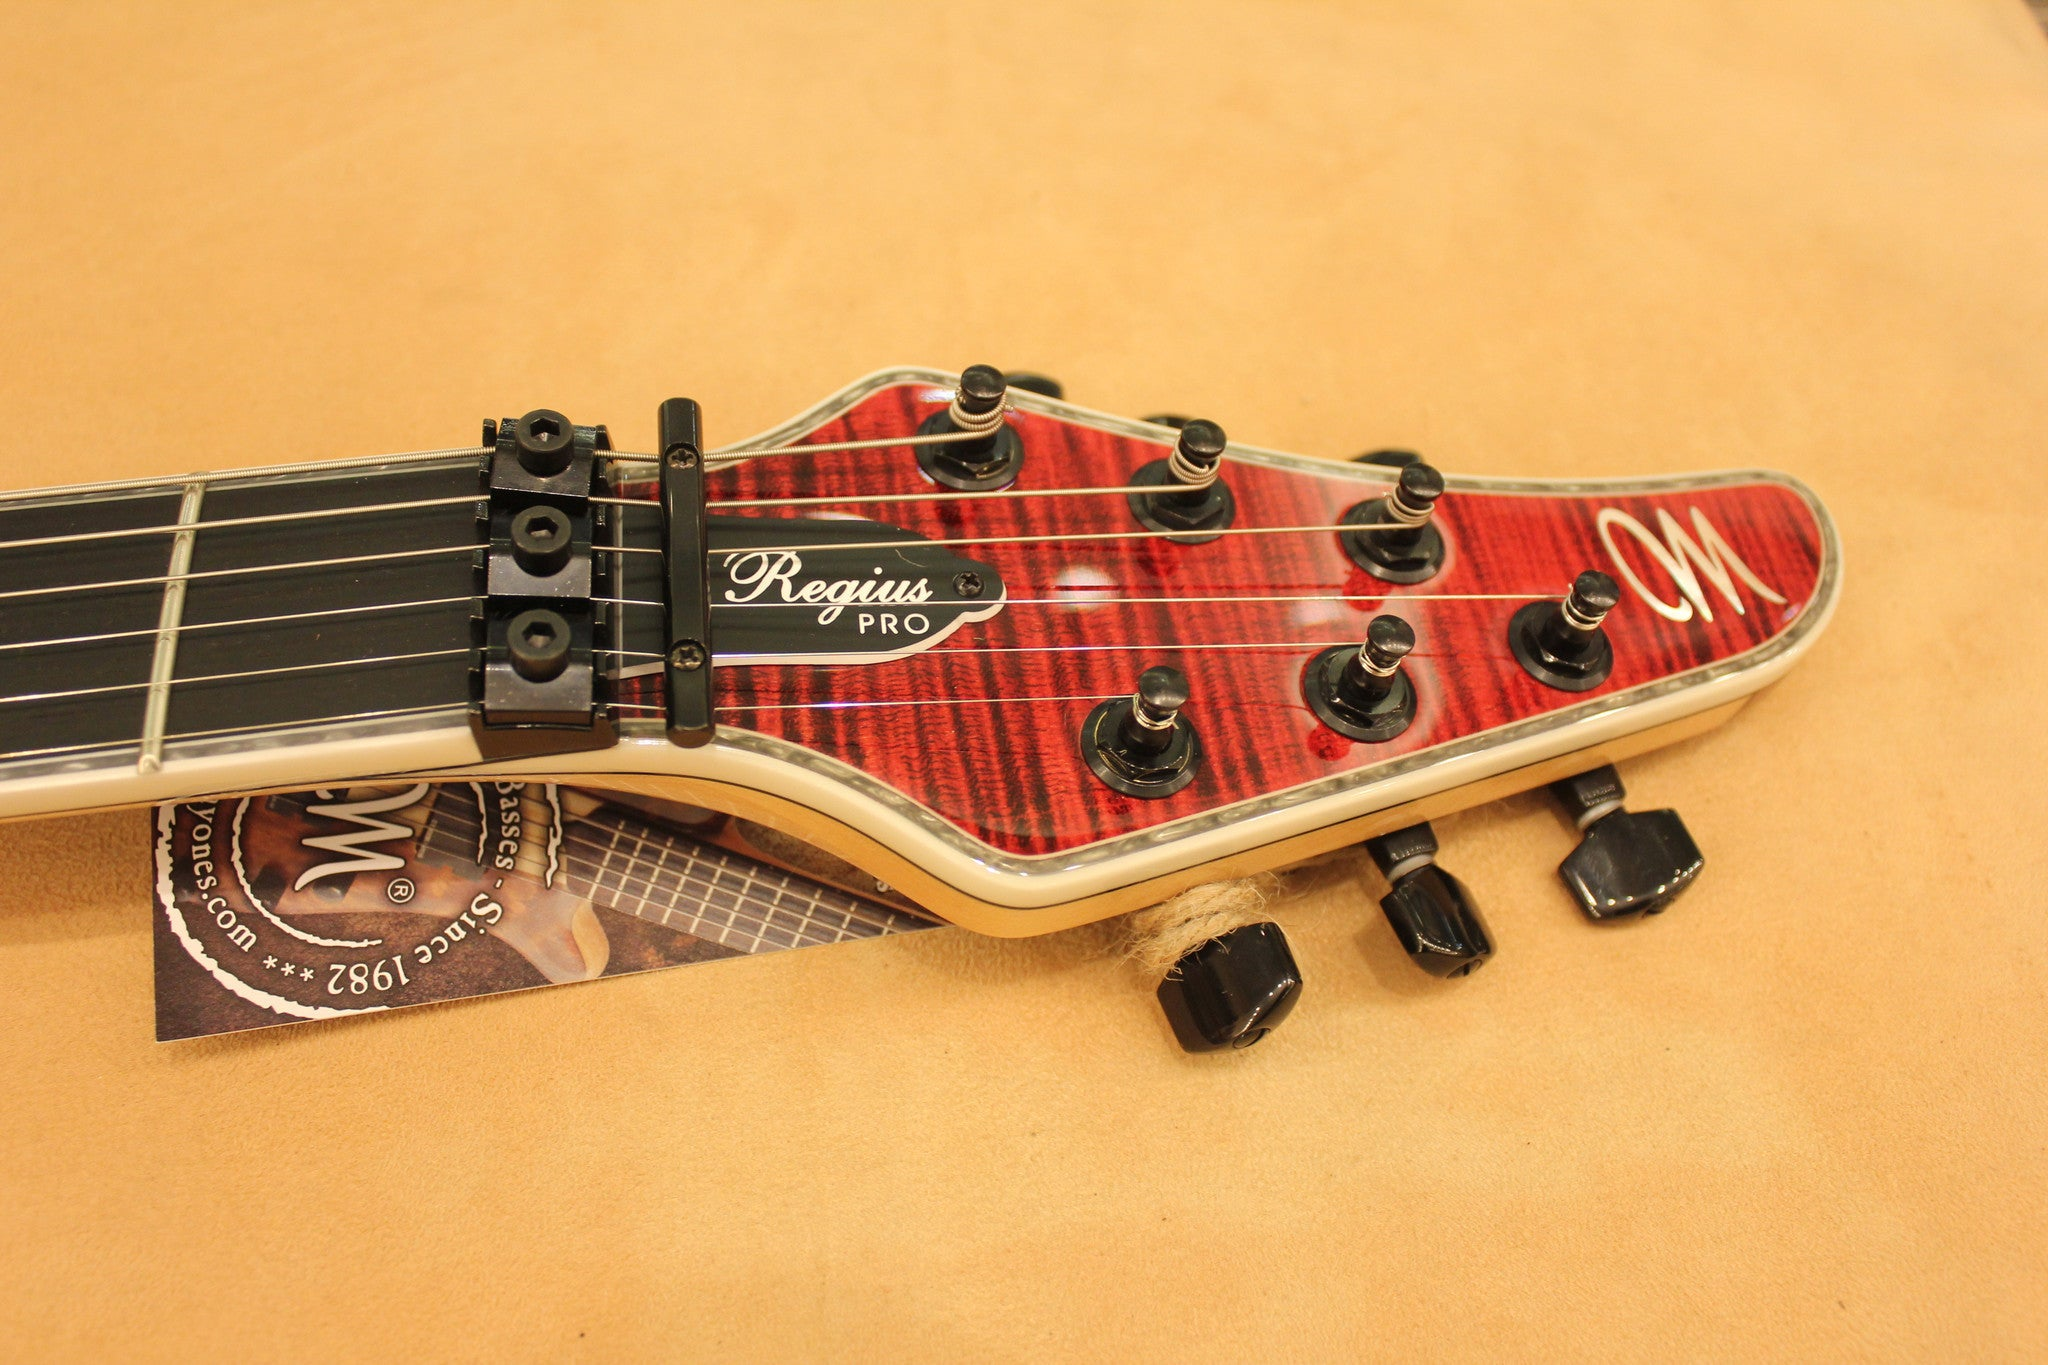 Mayones Regius PRO 6 Transparent Red Caparison - HIENDGUITAR.COM